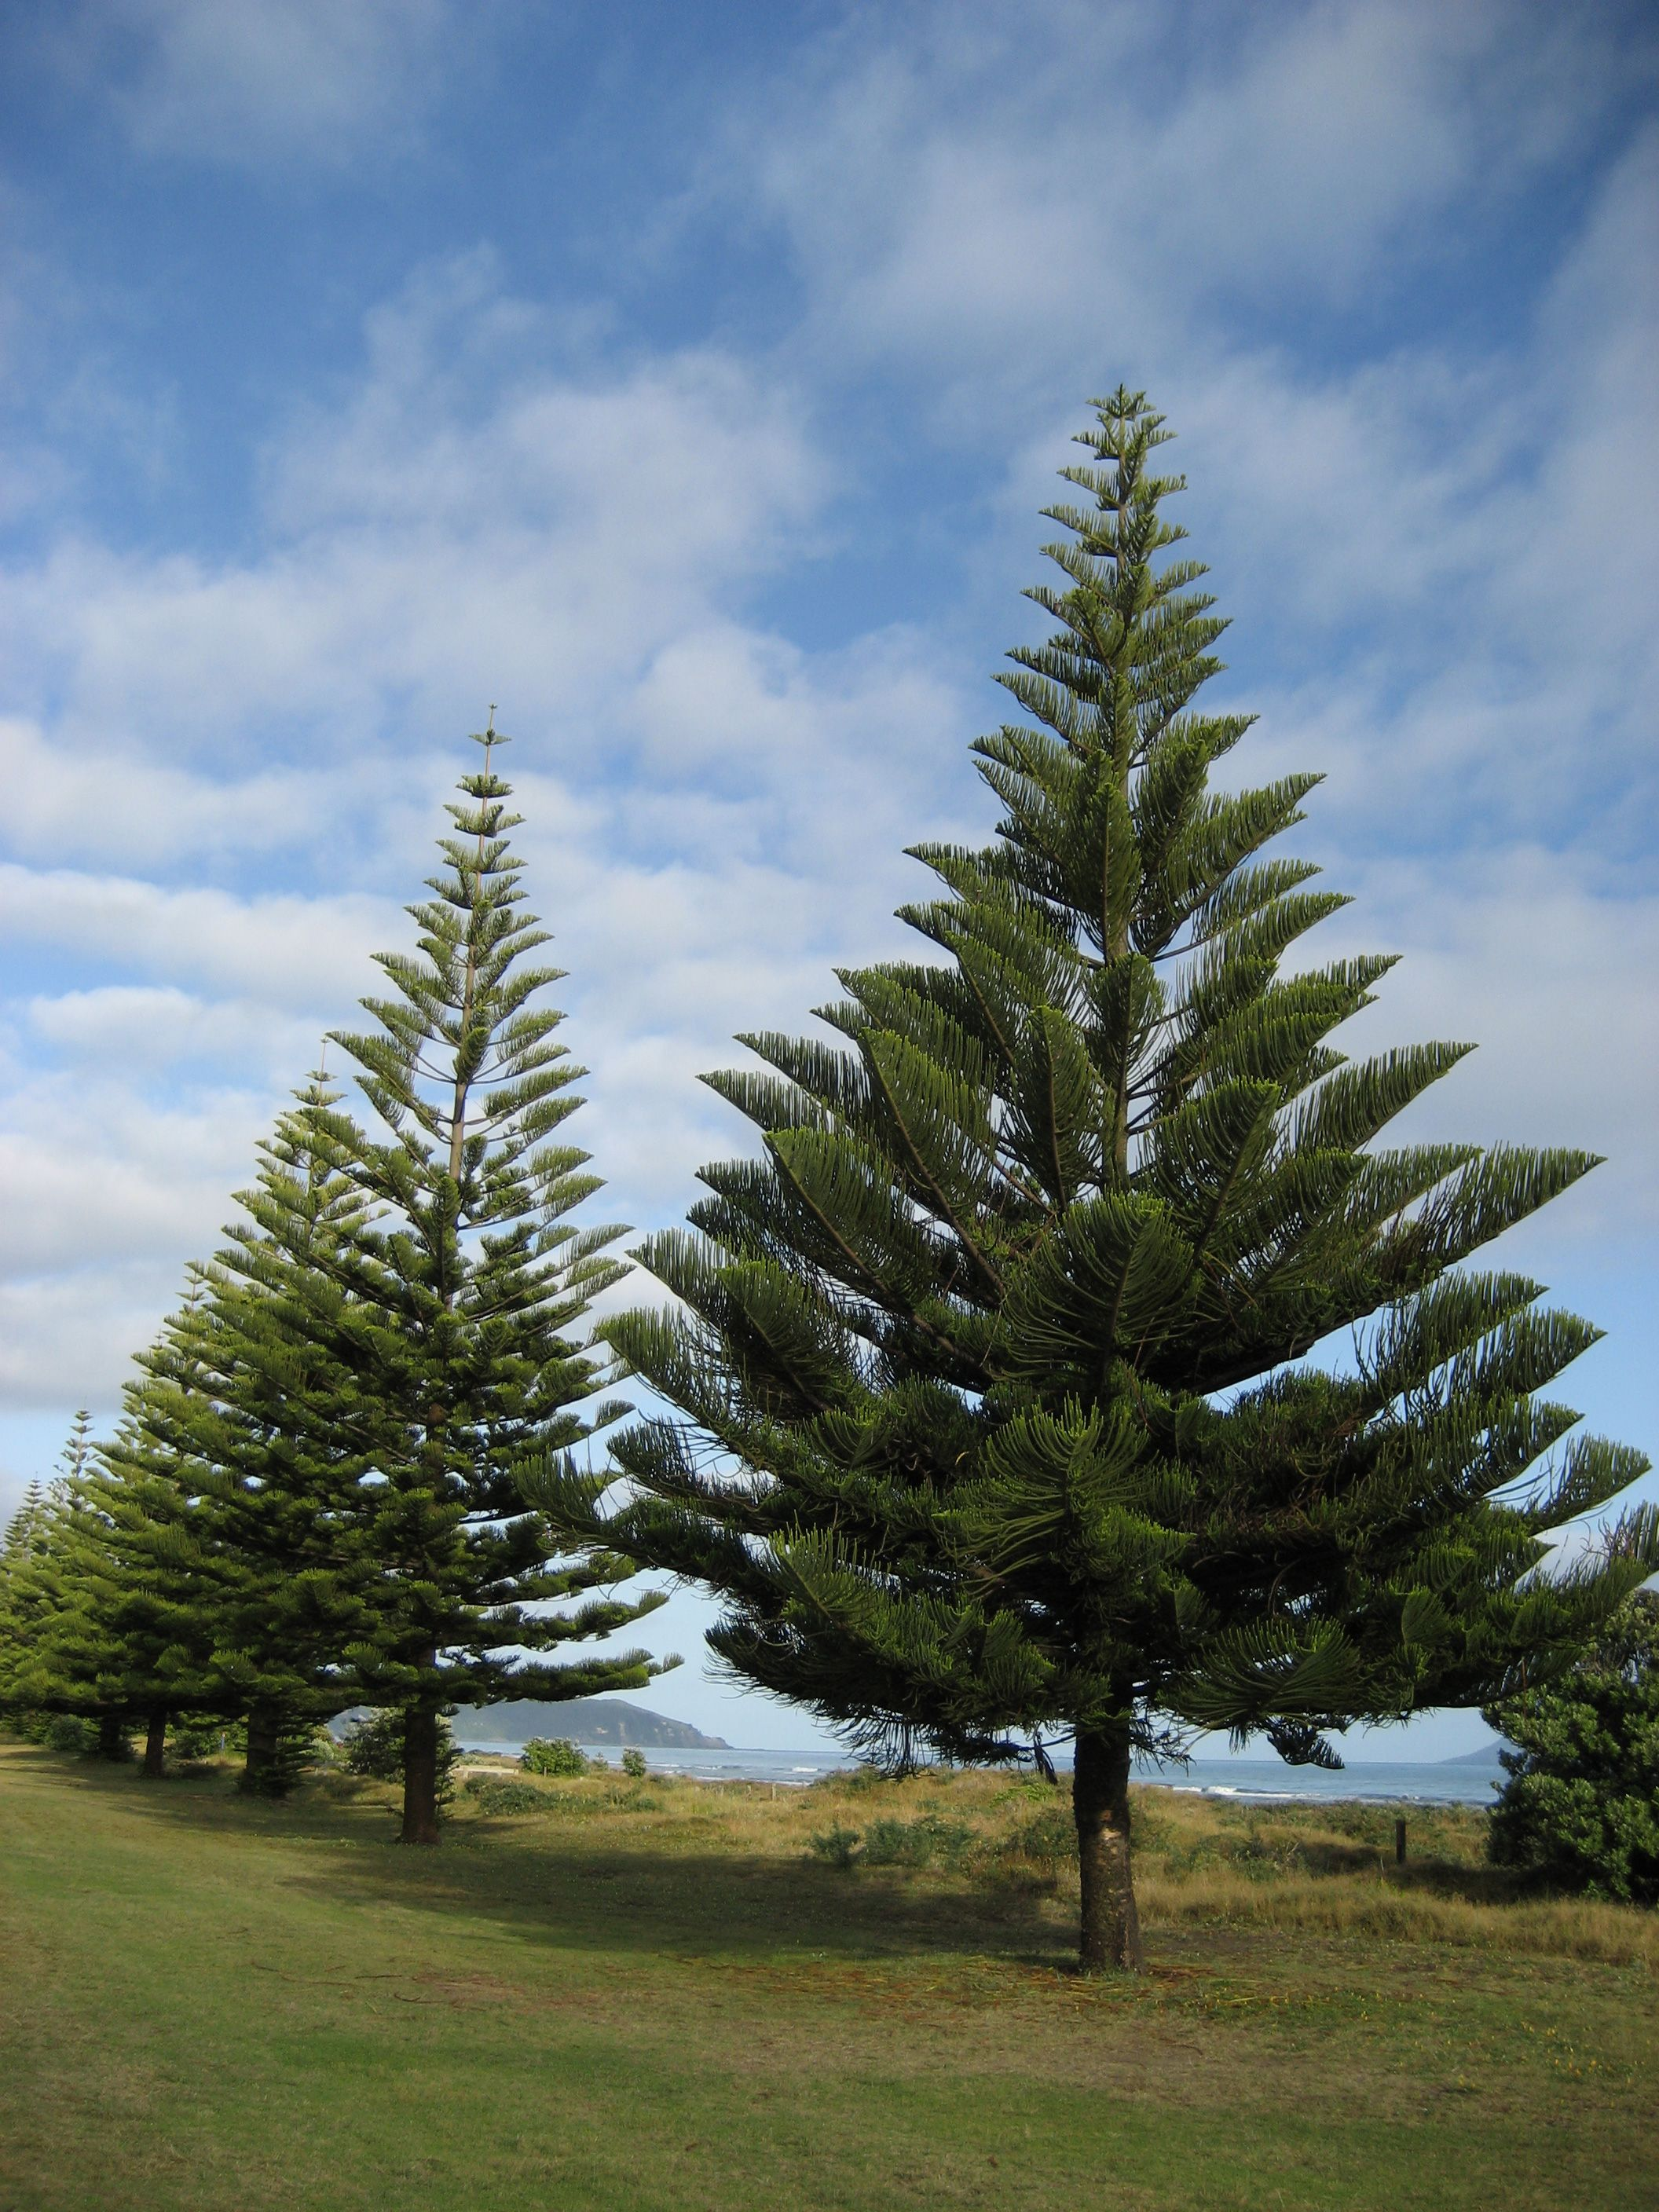 And information network araucaria heterophylla norfolk pine - Norfolk Island Pine Araucaria Heterophylla An Iconic Tree Synonymous With